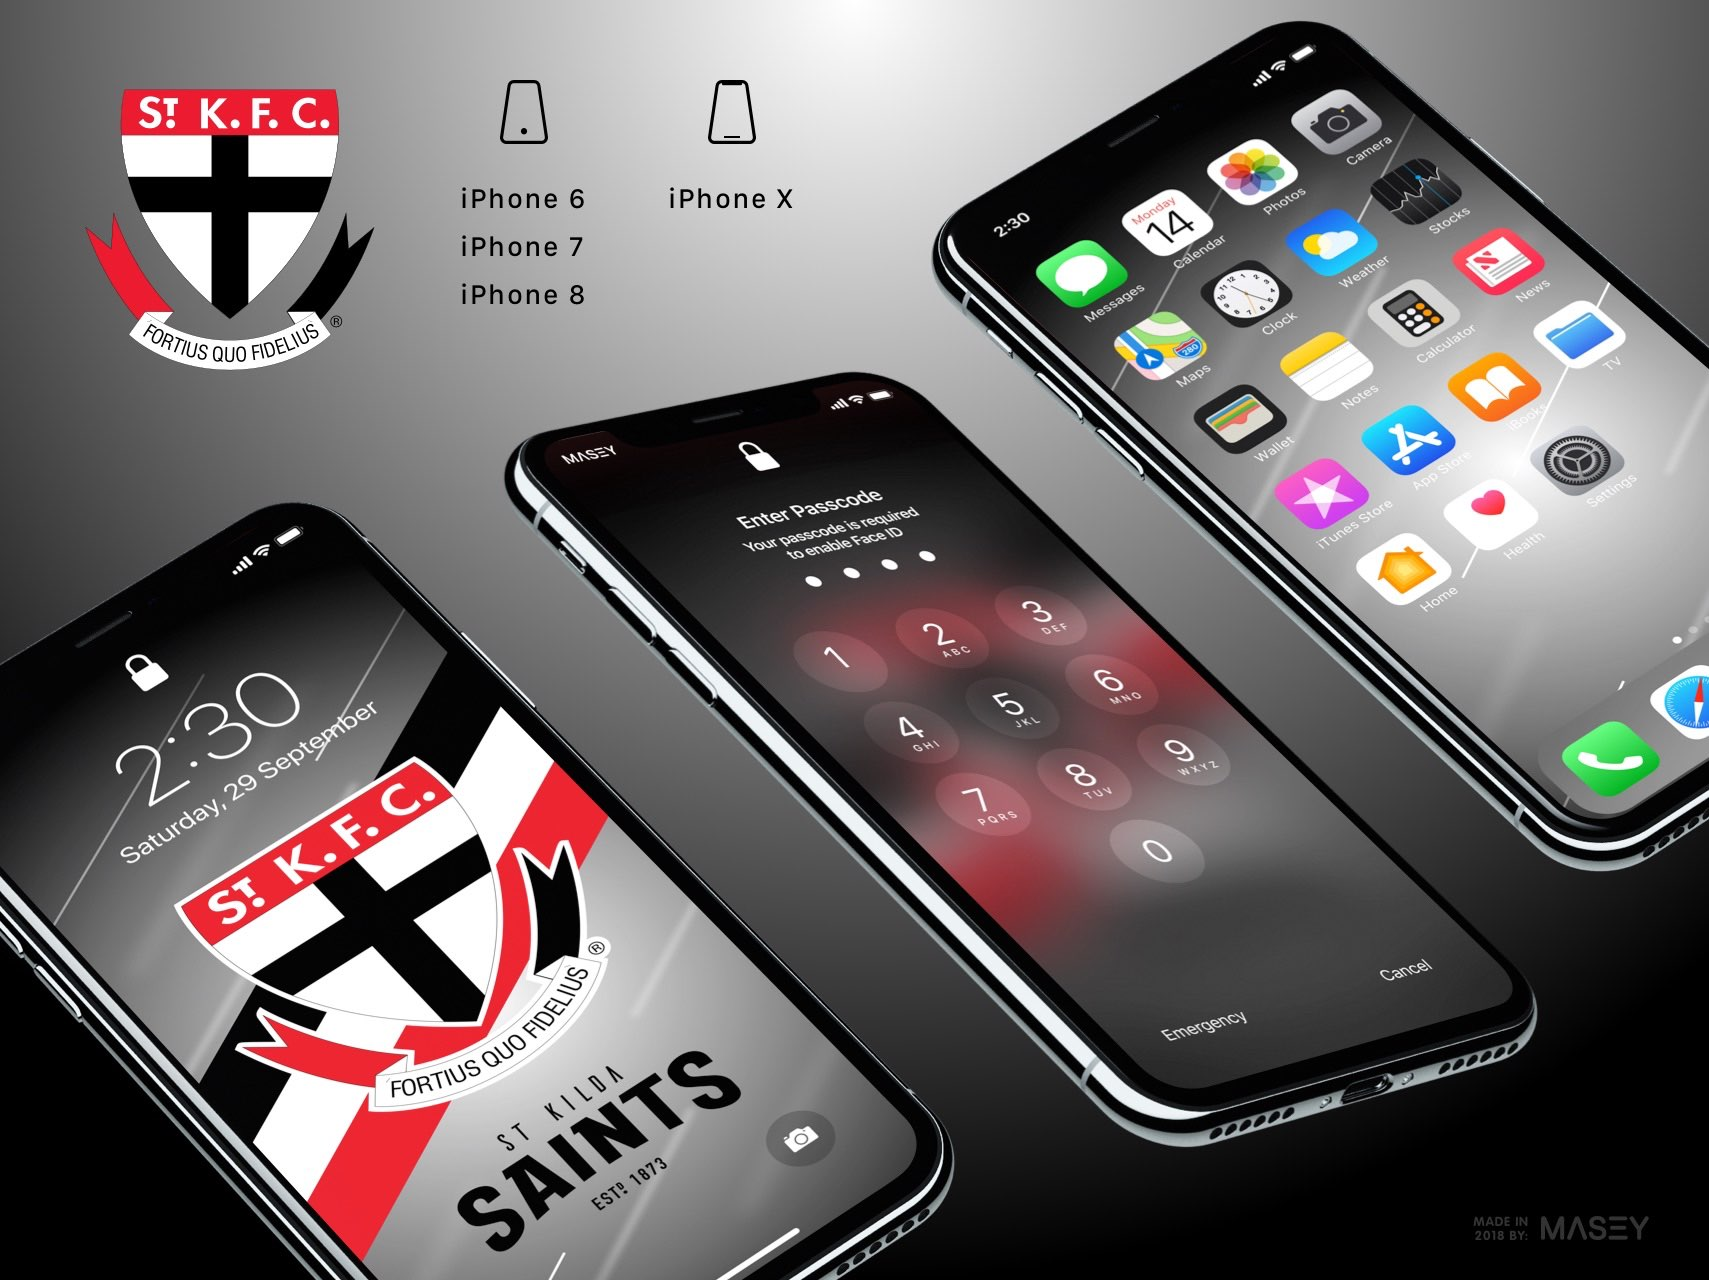 St Kilda Saints iPhone Wallpaper